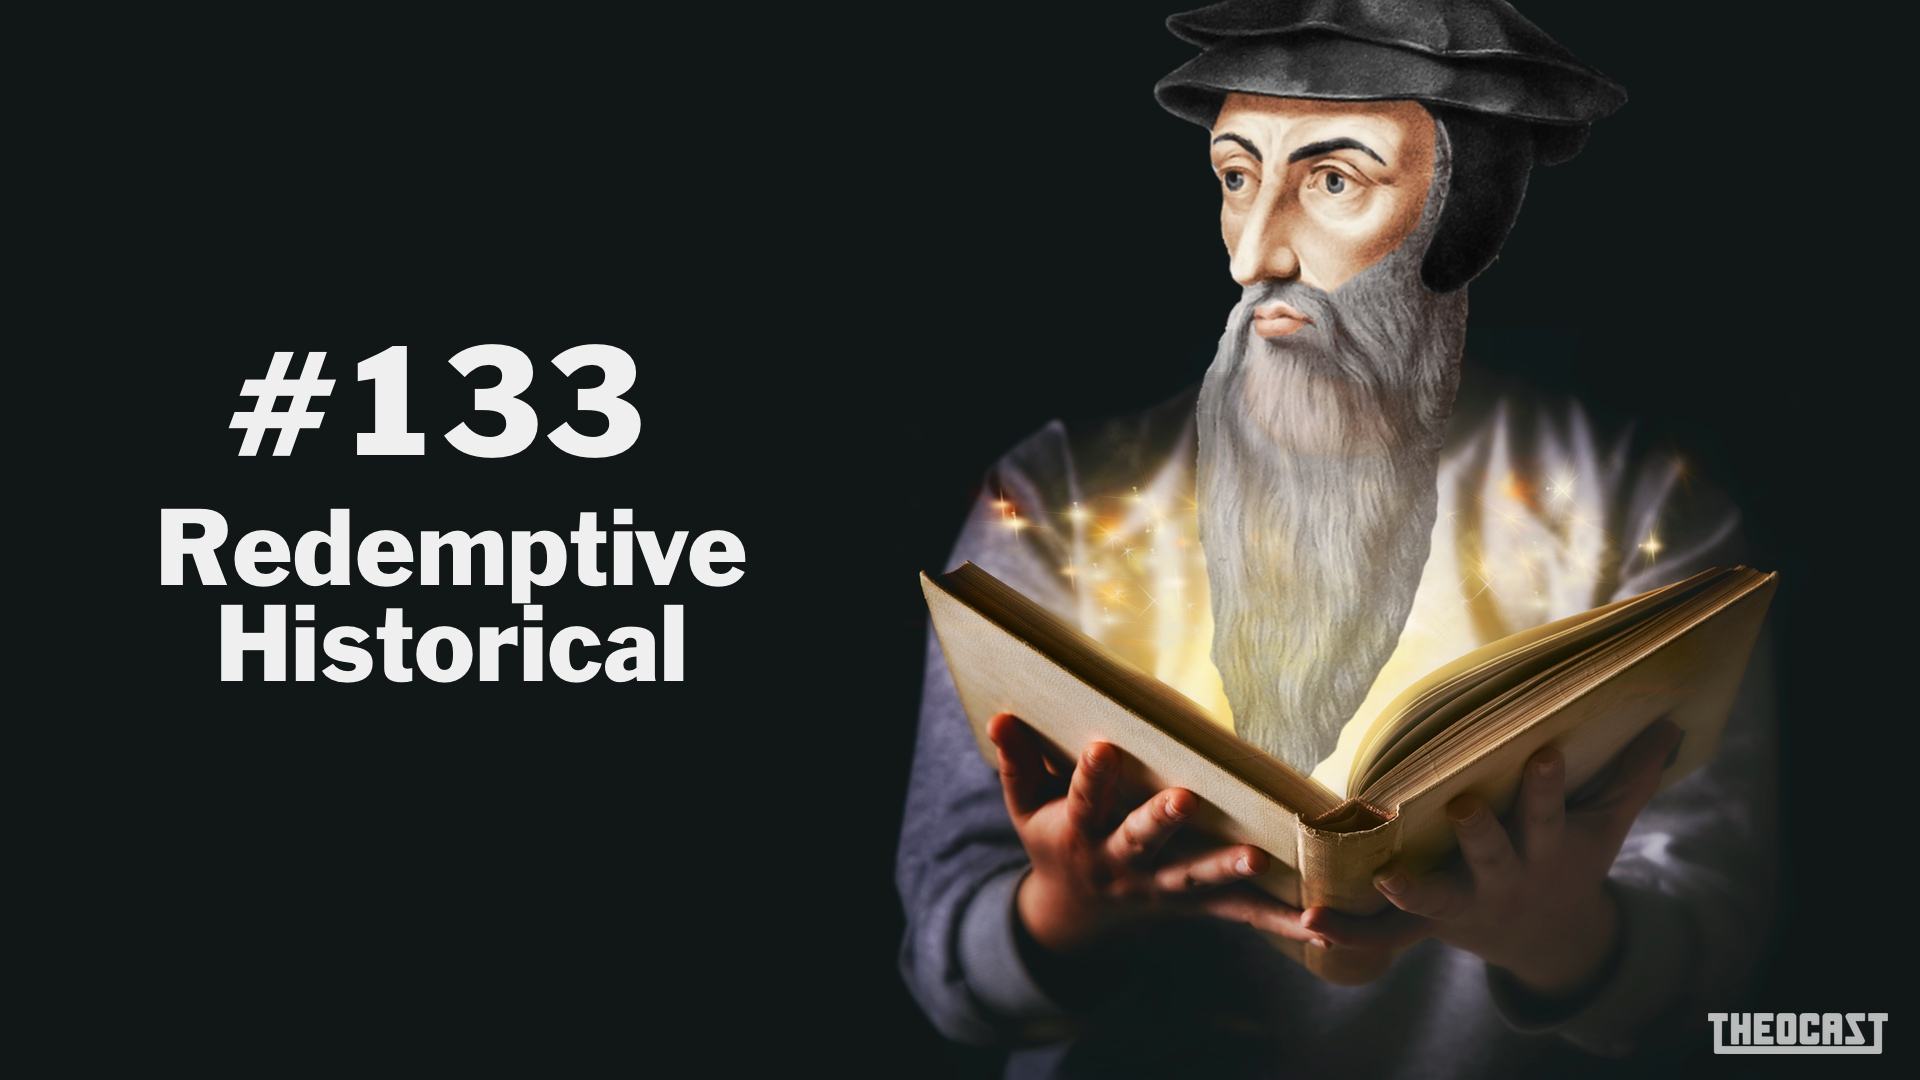 #133 Redemptive Historical